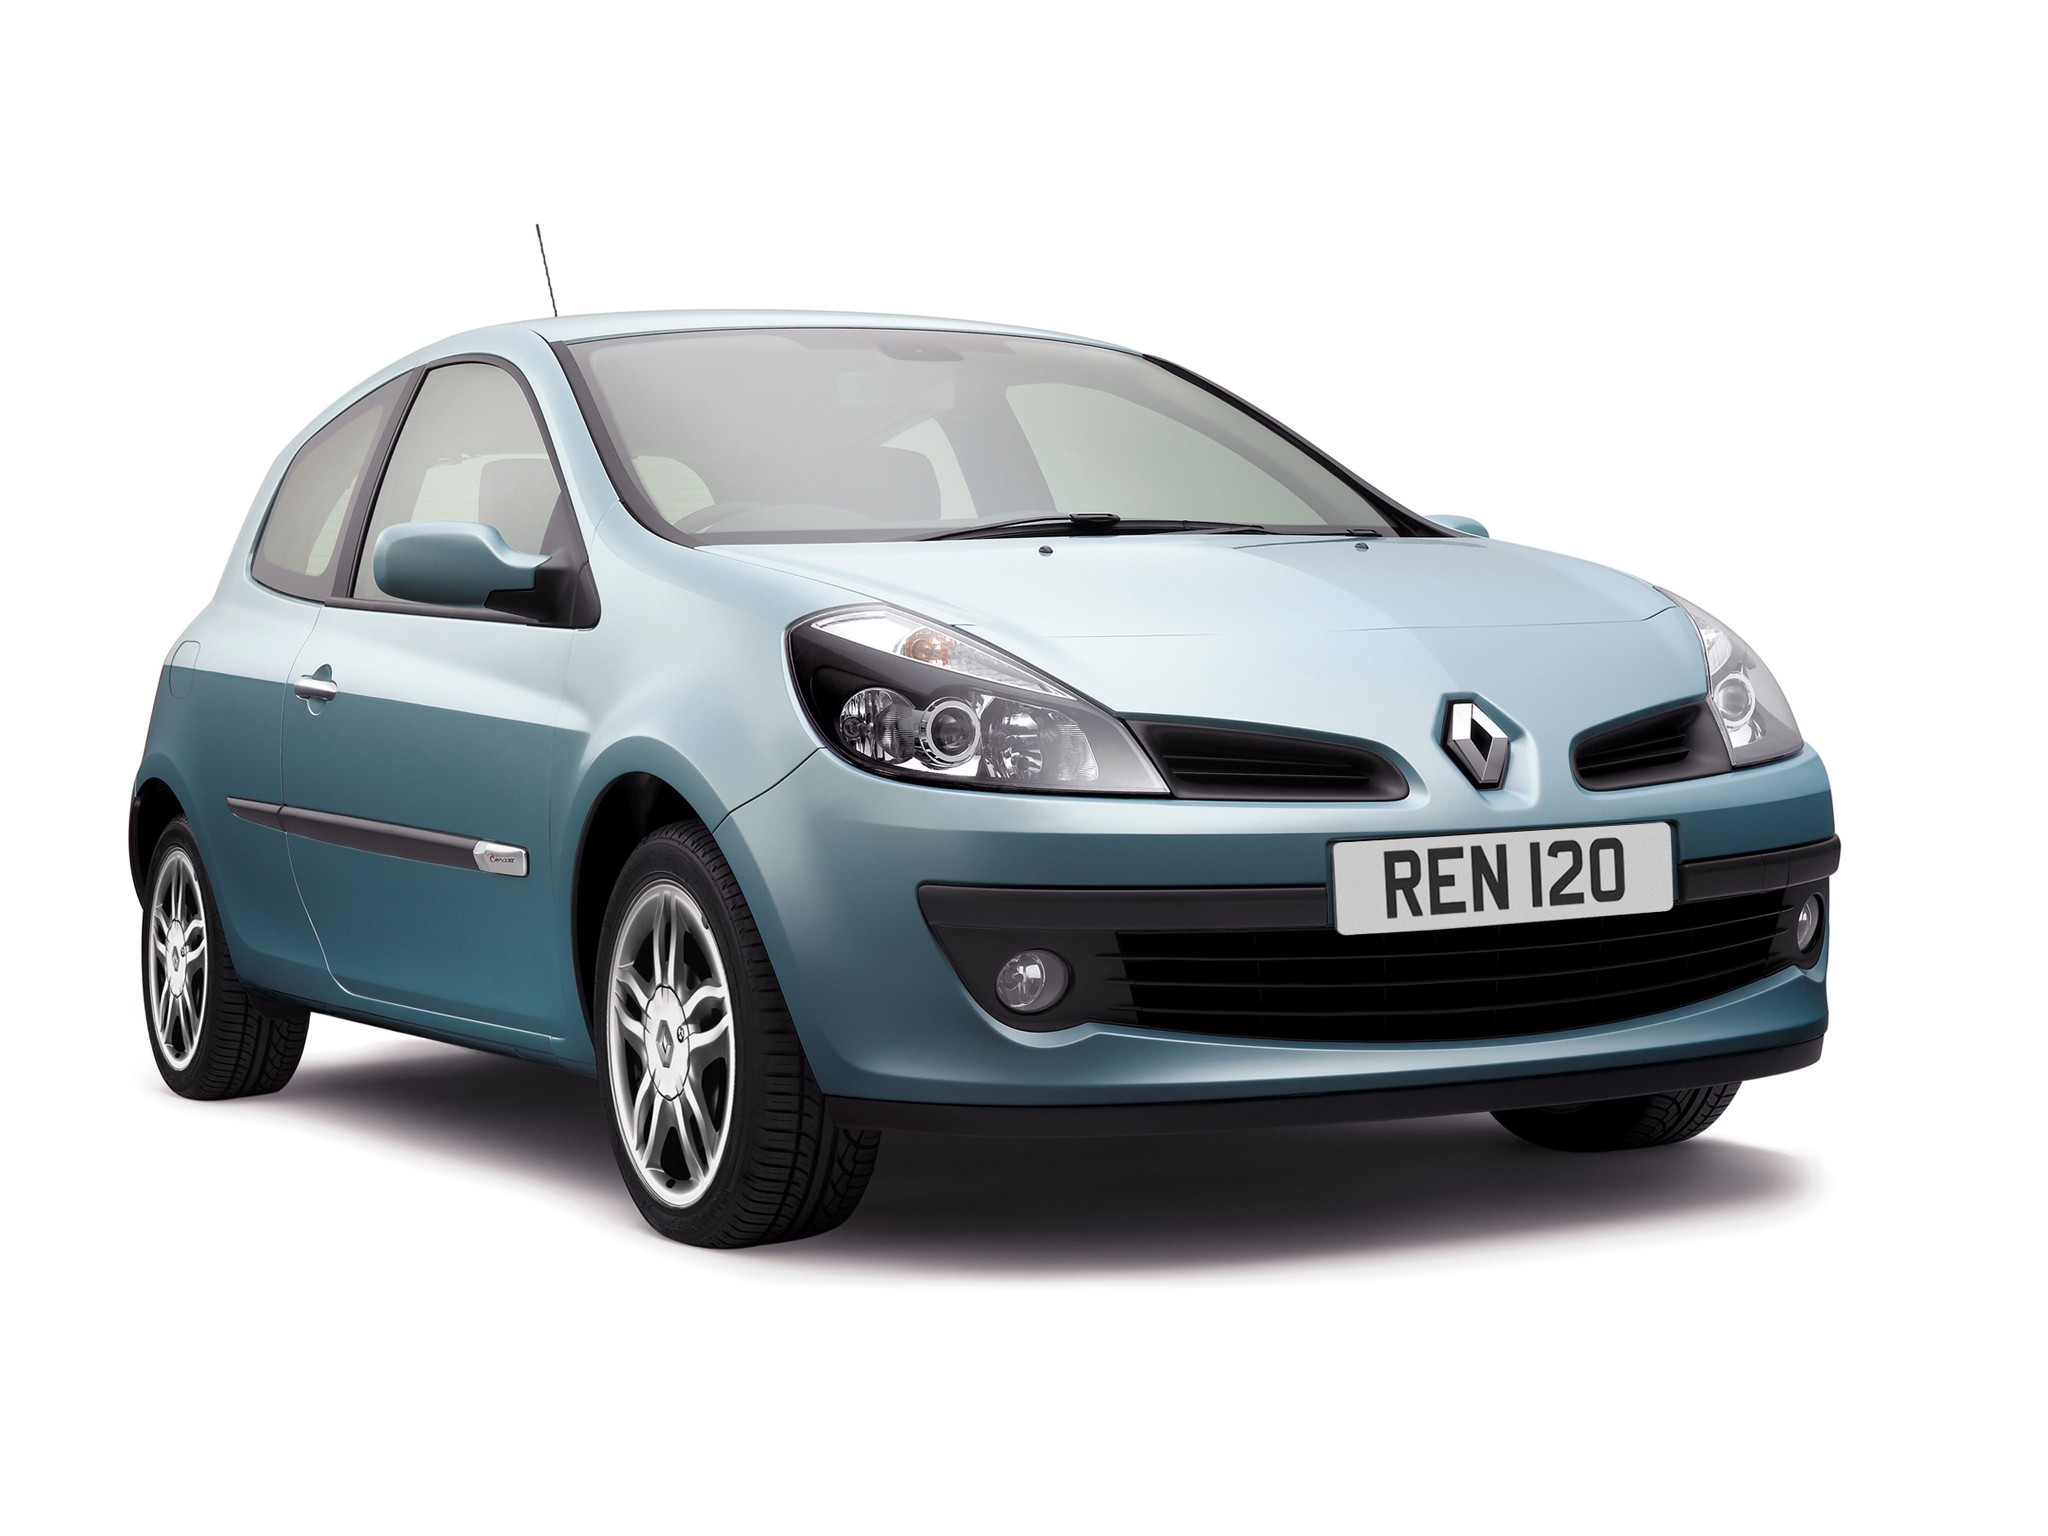 renault clio 3 doors specs photos 2006 2007 2008 2009 autoevolution. Black Bedroom Furniture Sets. Home Design Ideas